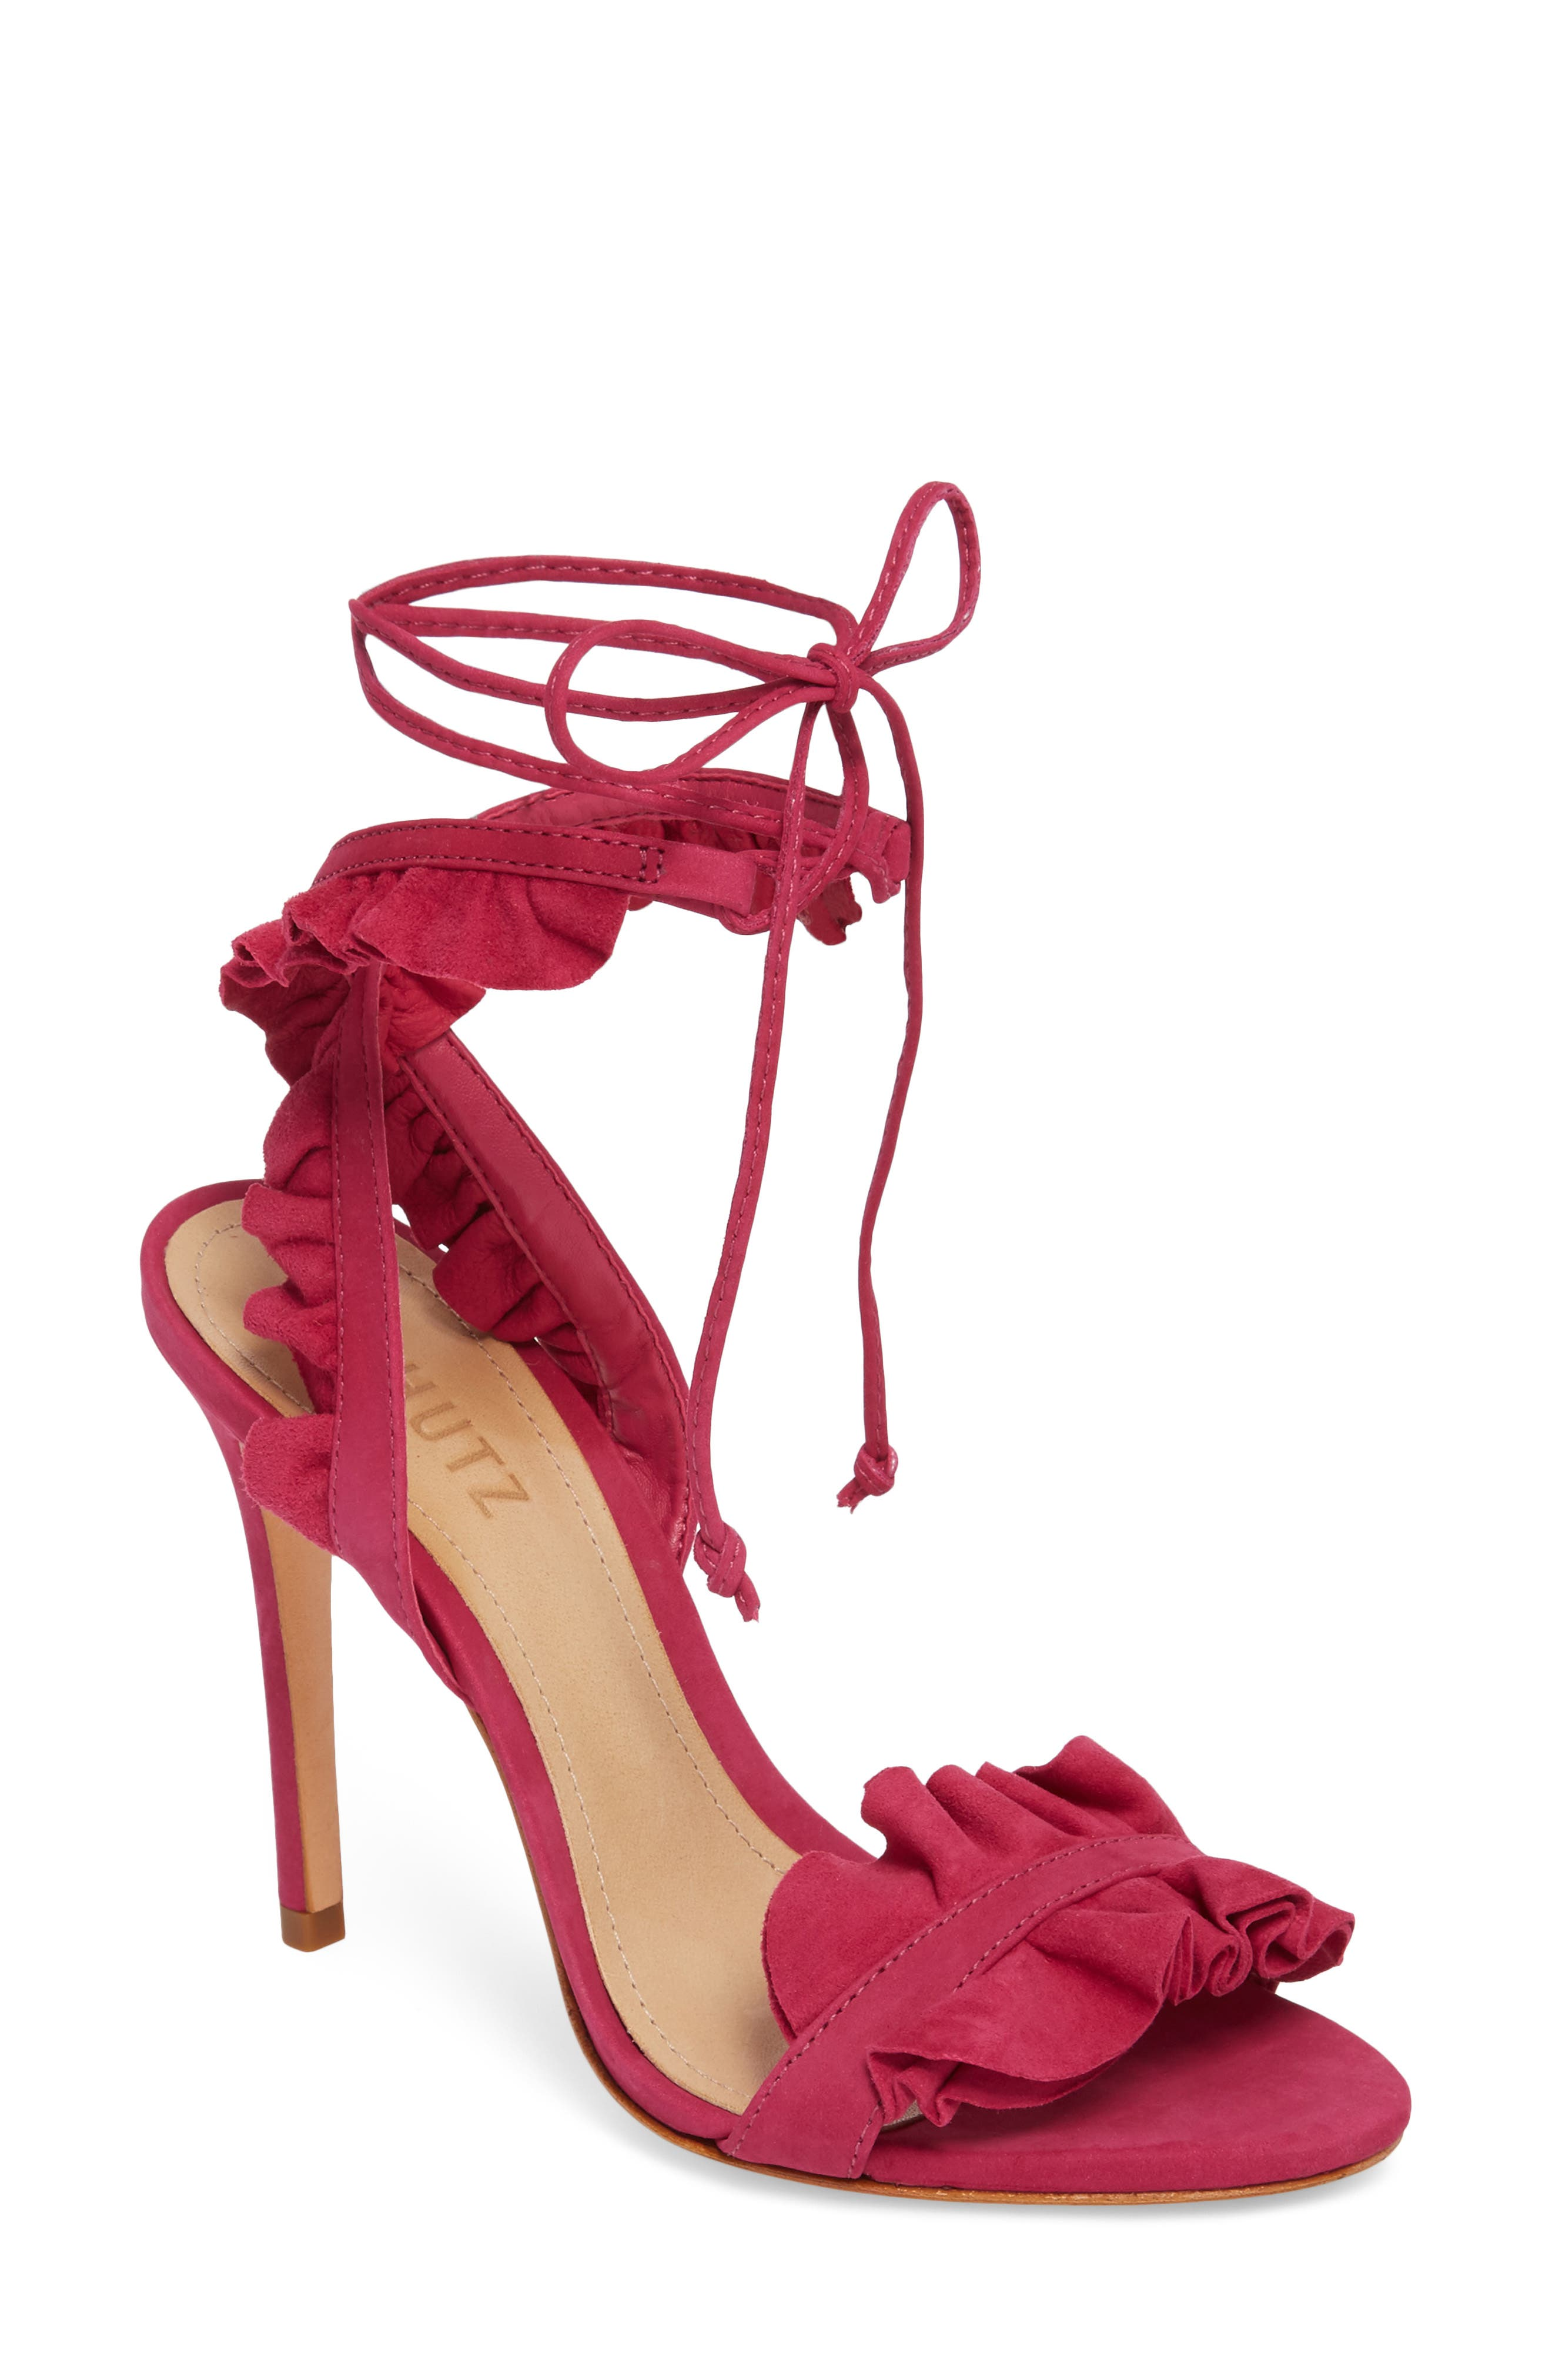 Irem Lace-UP Sandal,                             Main thumbnail 1, color,                             Bright Rose Nubuck Leather